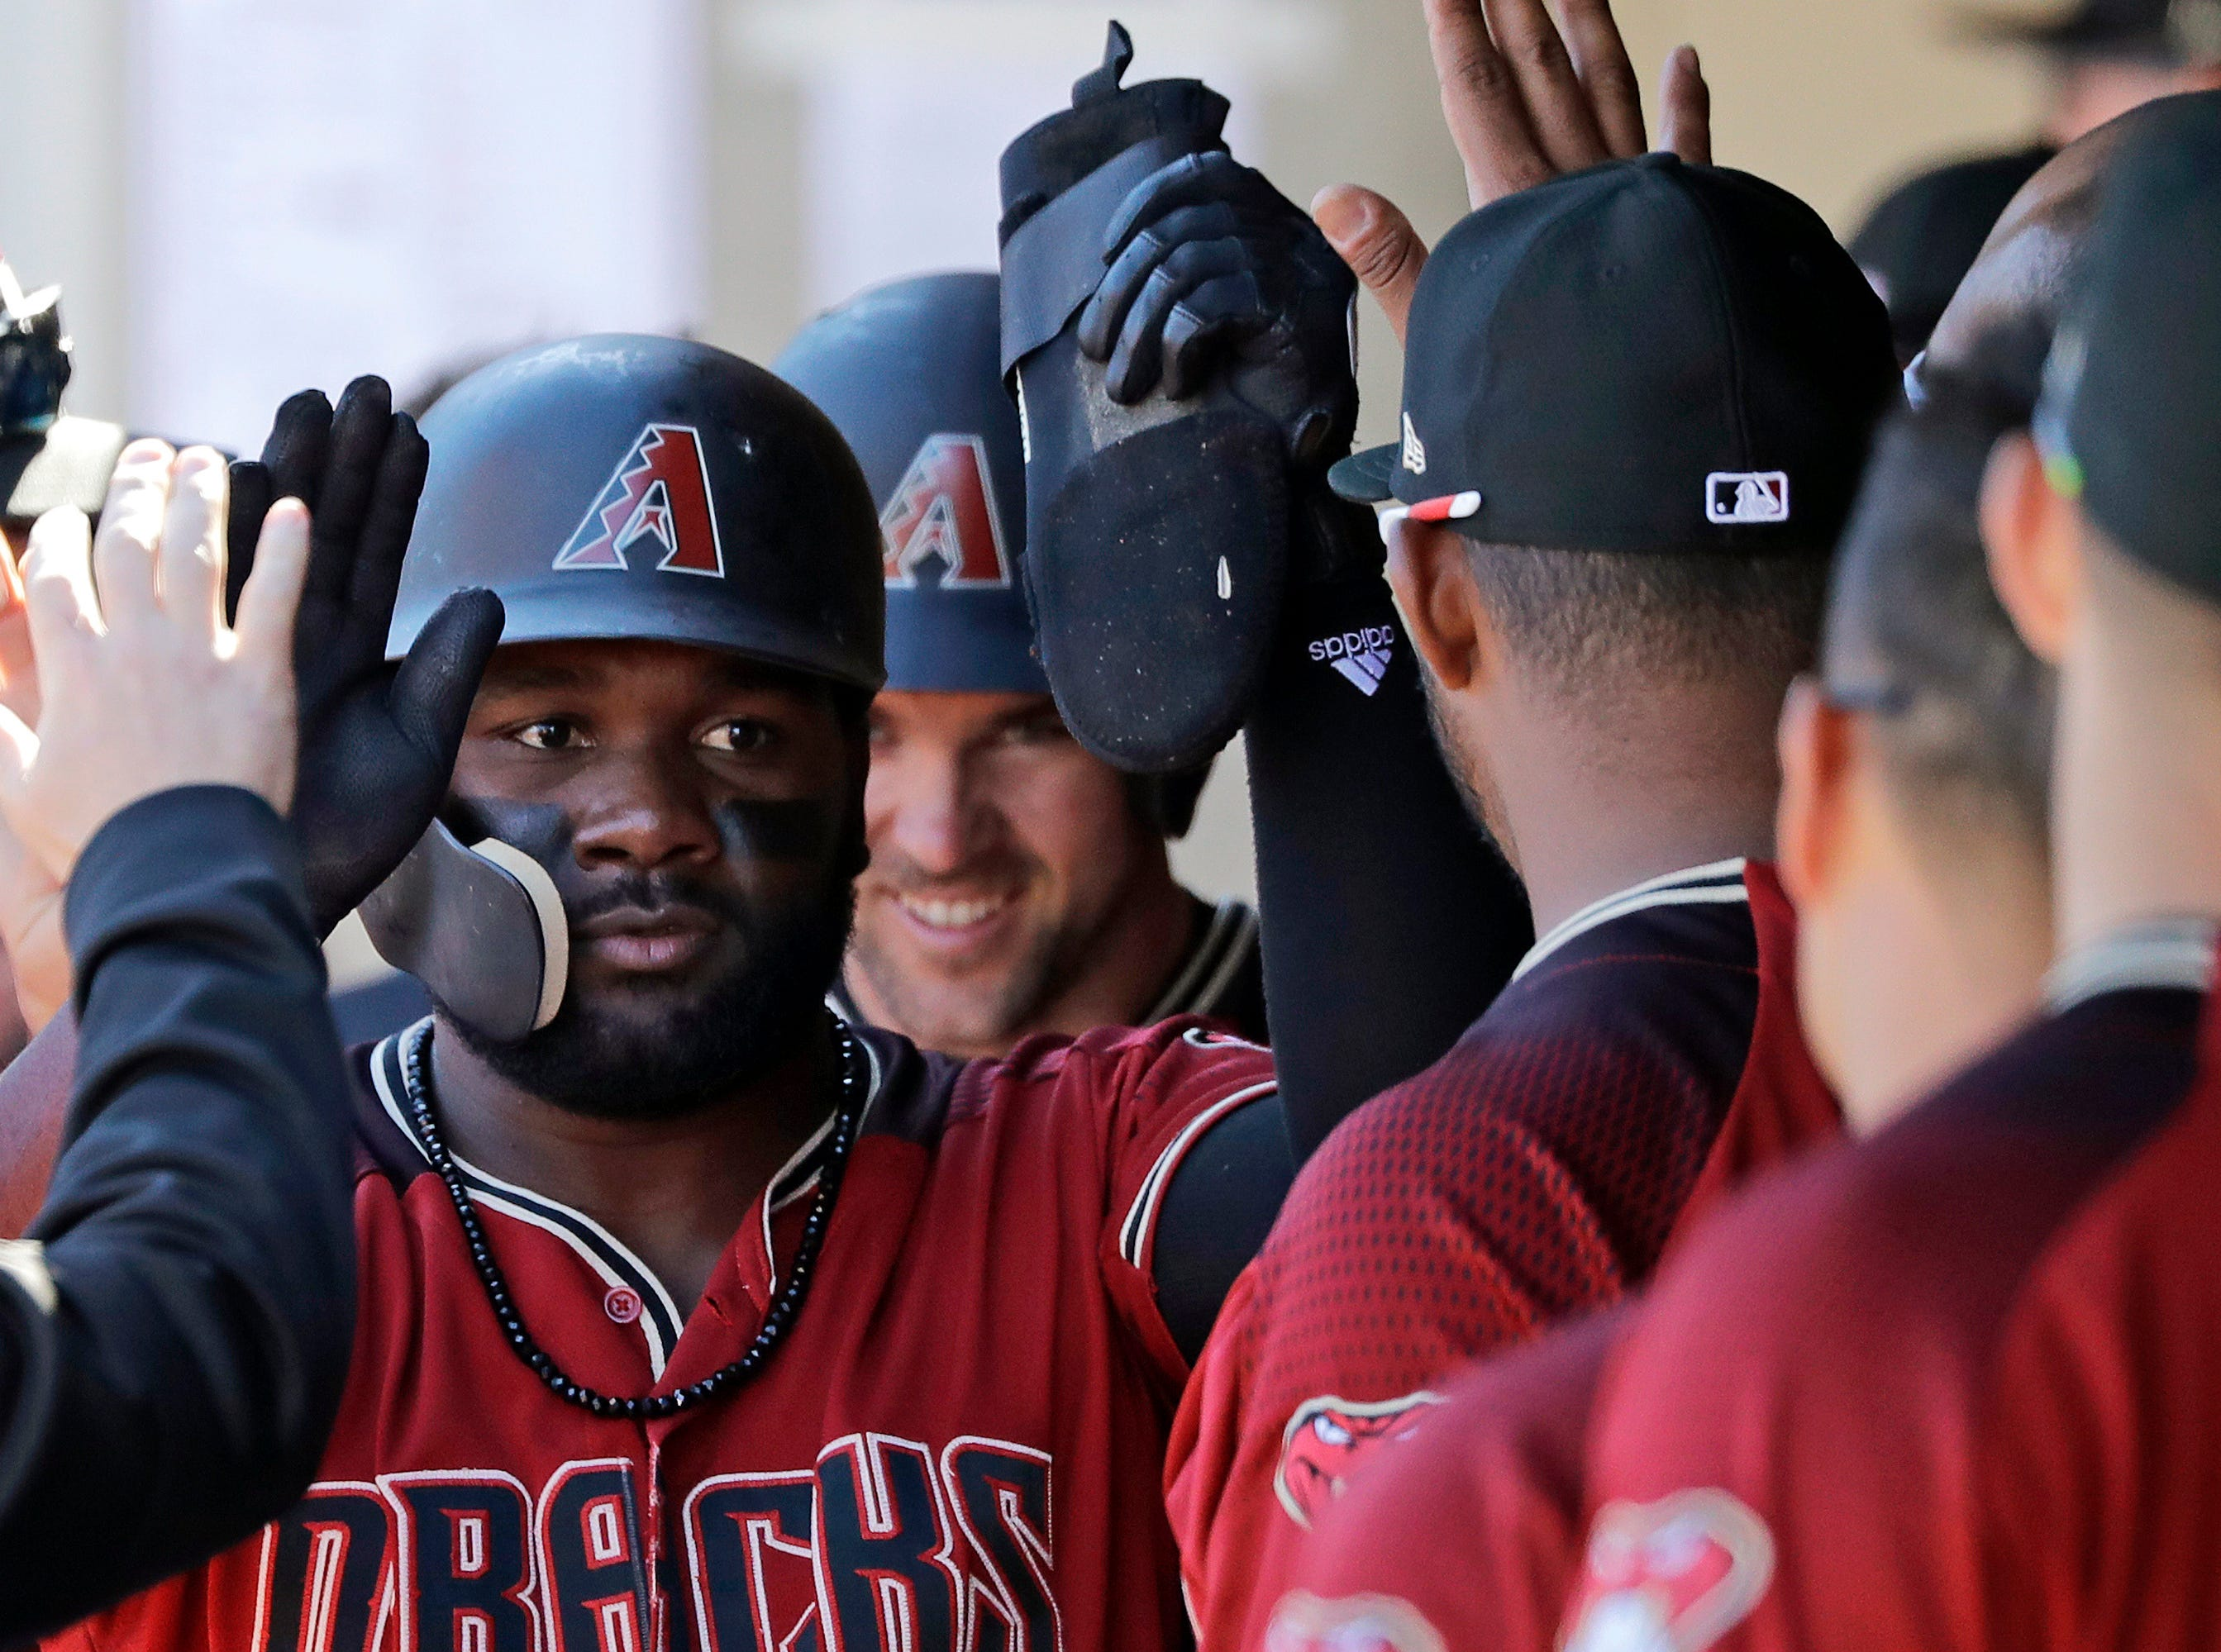 Arizona Diamondbacks' Abraham Almonte, left, is followed by Matt Szczur for congratulations in the dugout after they scored in the seventh inning of a spring training baseball game against the San Francisco Giants, Thursday, March 14, 2019, in Scottsdale, Ariz.